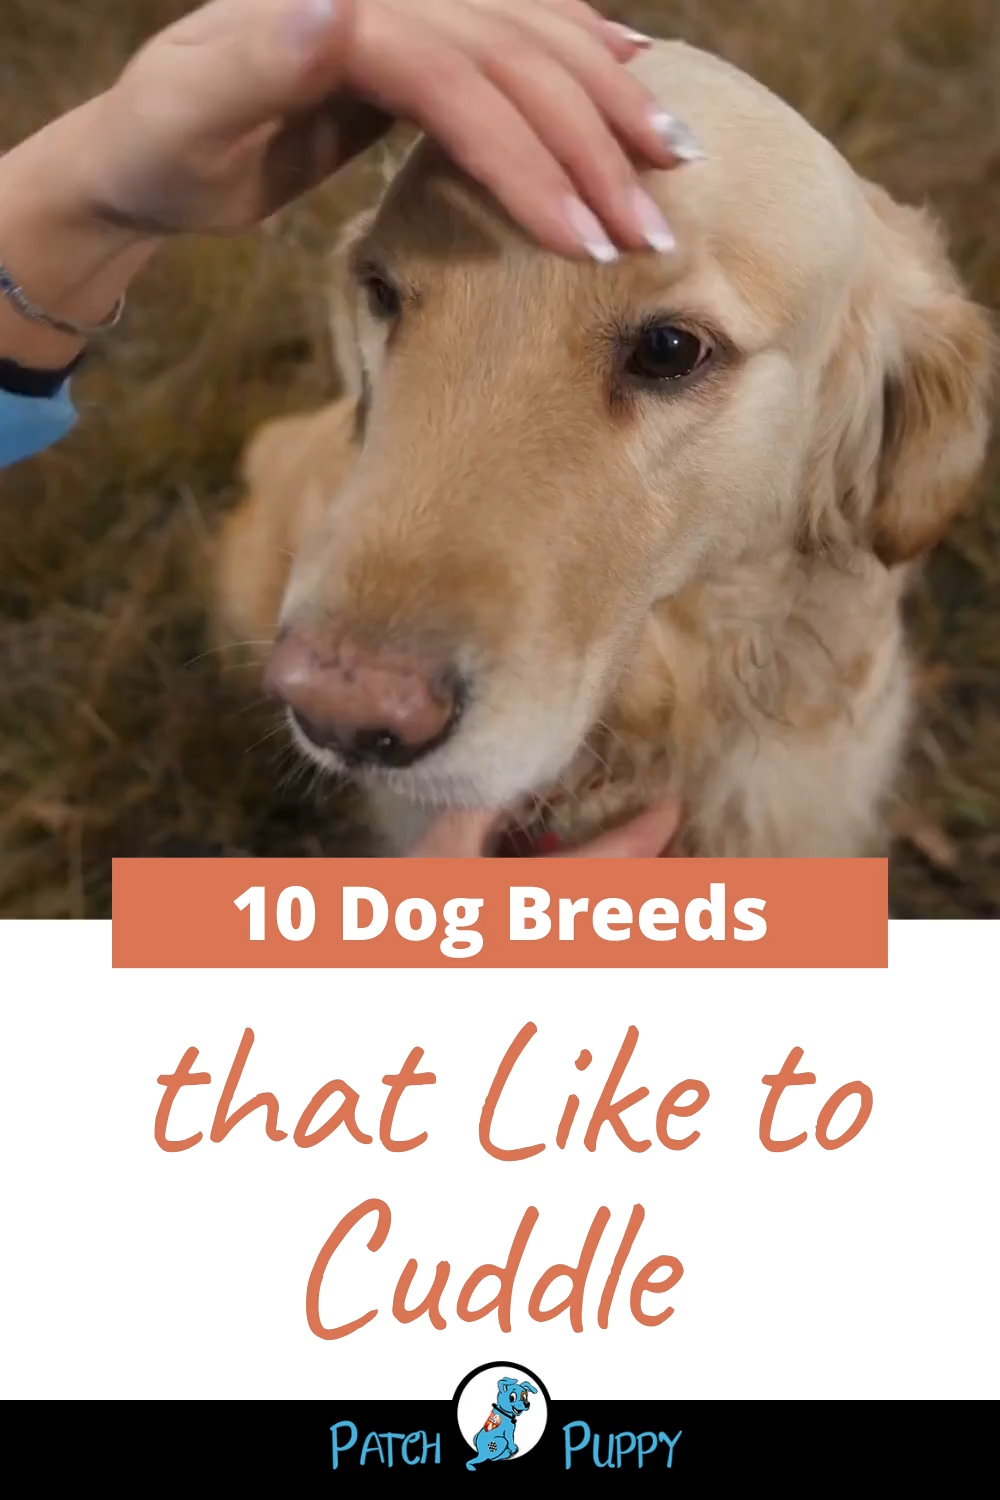 10 Dog Breeds that Like to Cuddle